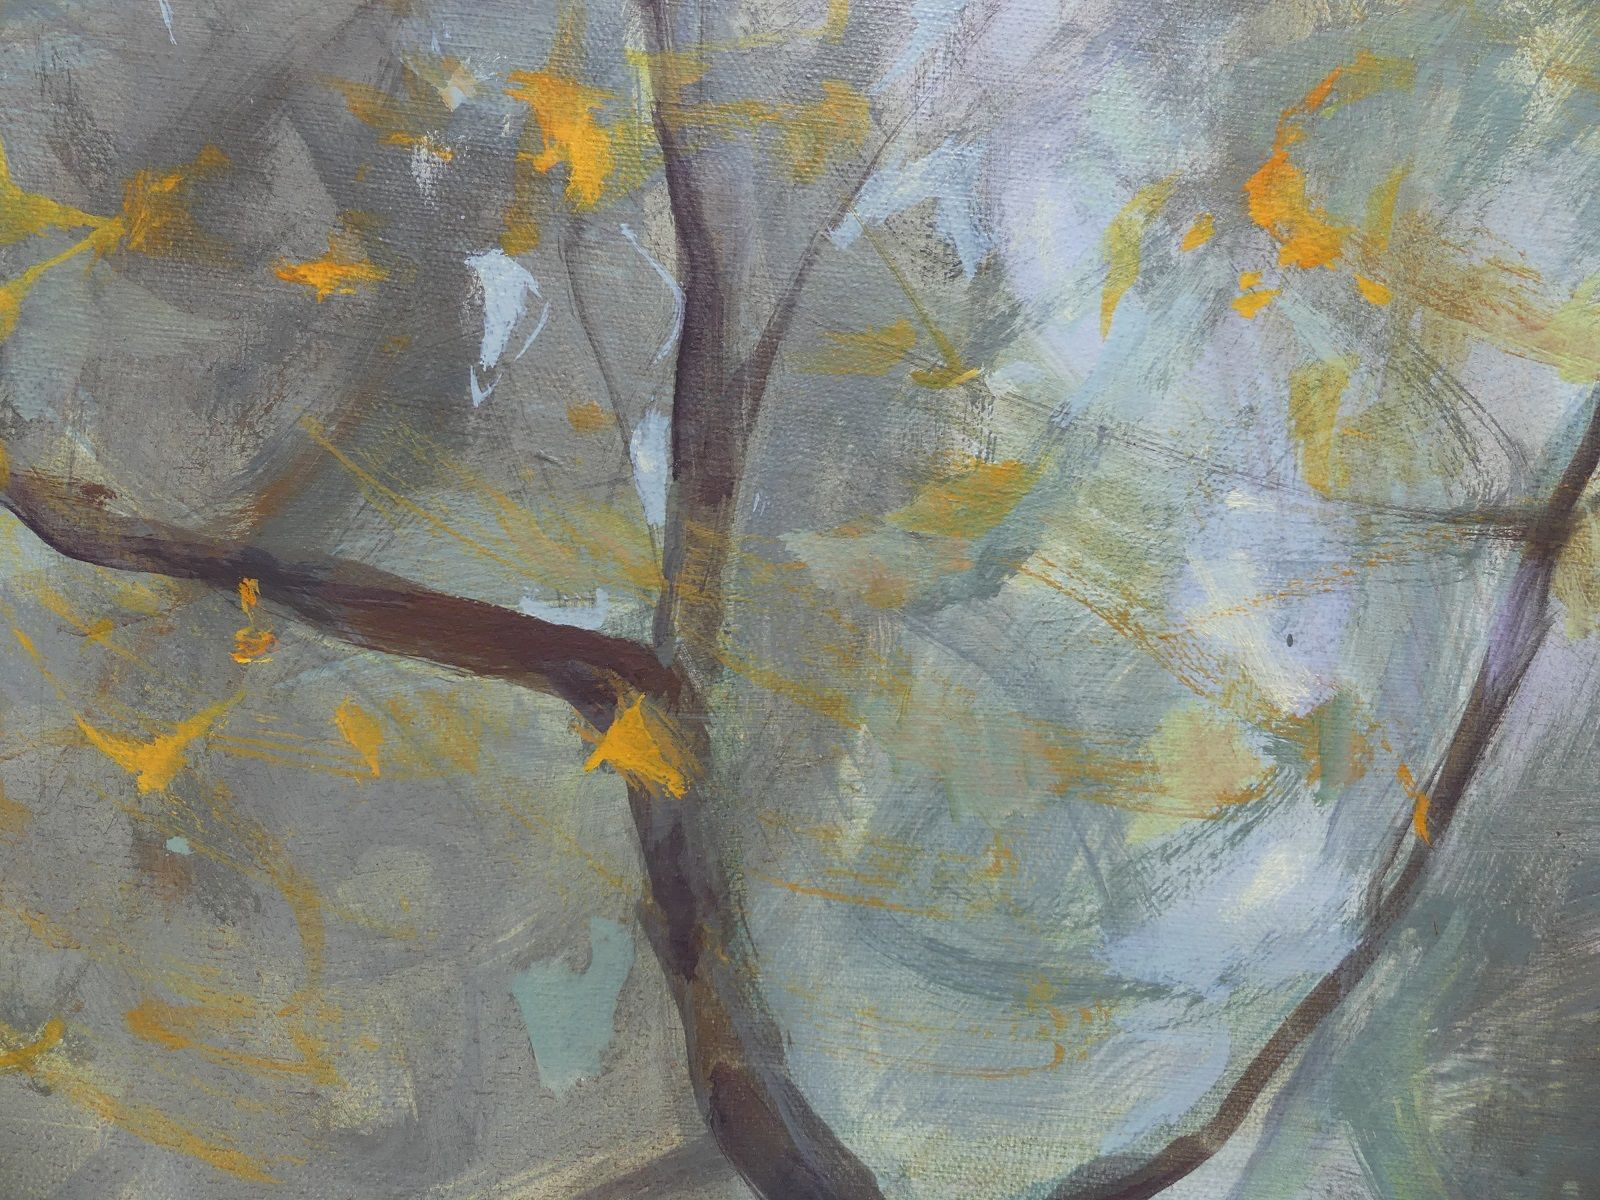 Aspens' and Willows' Branches in Autumn ,Valérie de Sarrieu,Painting, detail 1